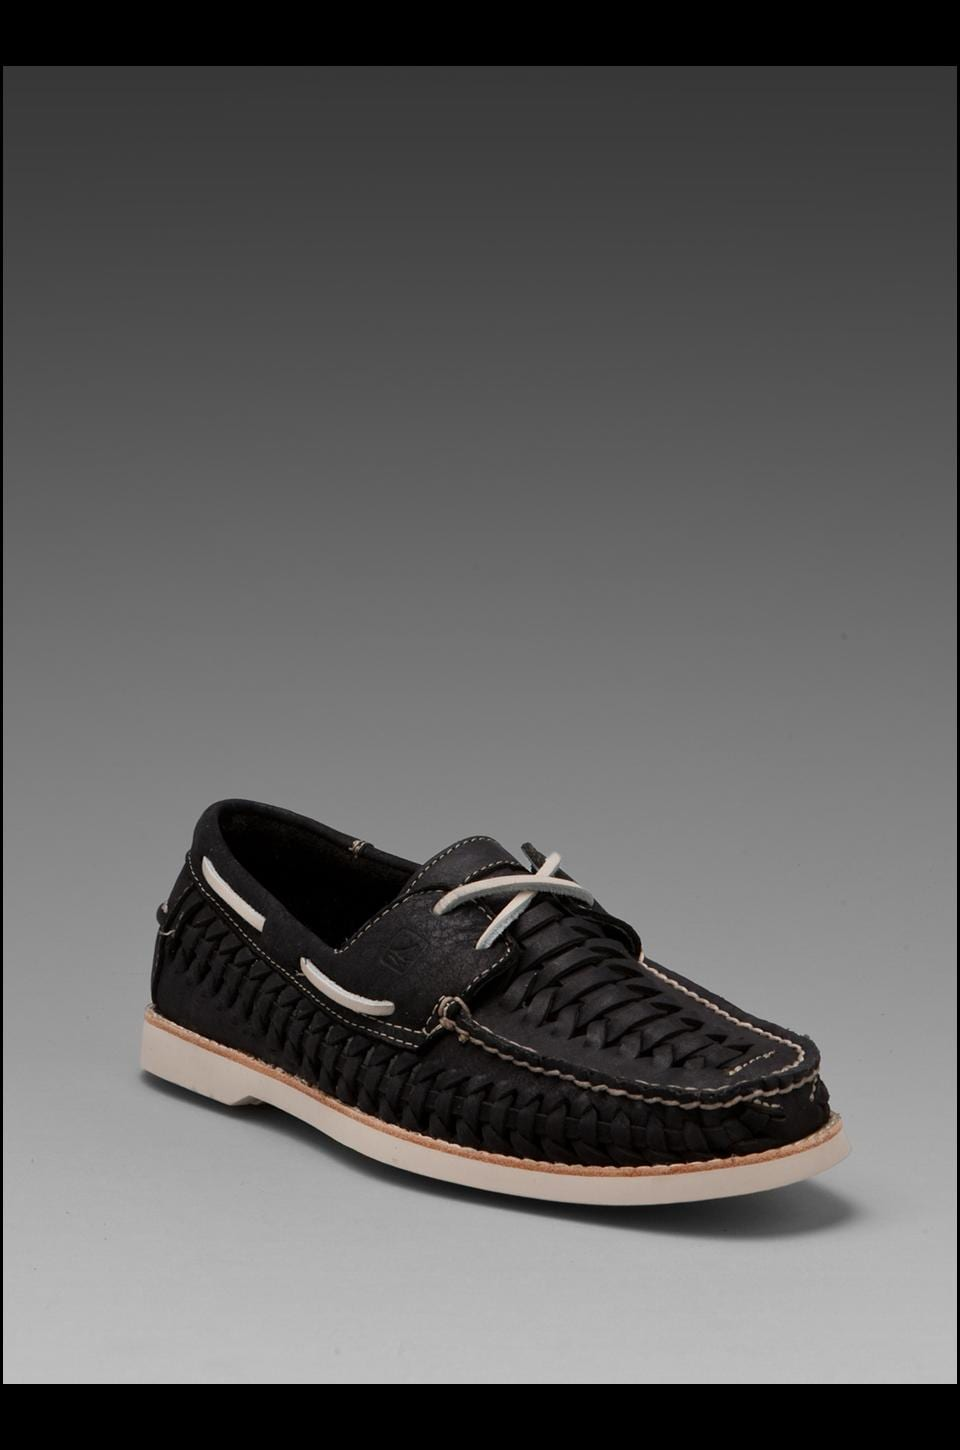 Sperry Top-Sider Seaside 2-Eye Woven in Black